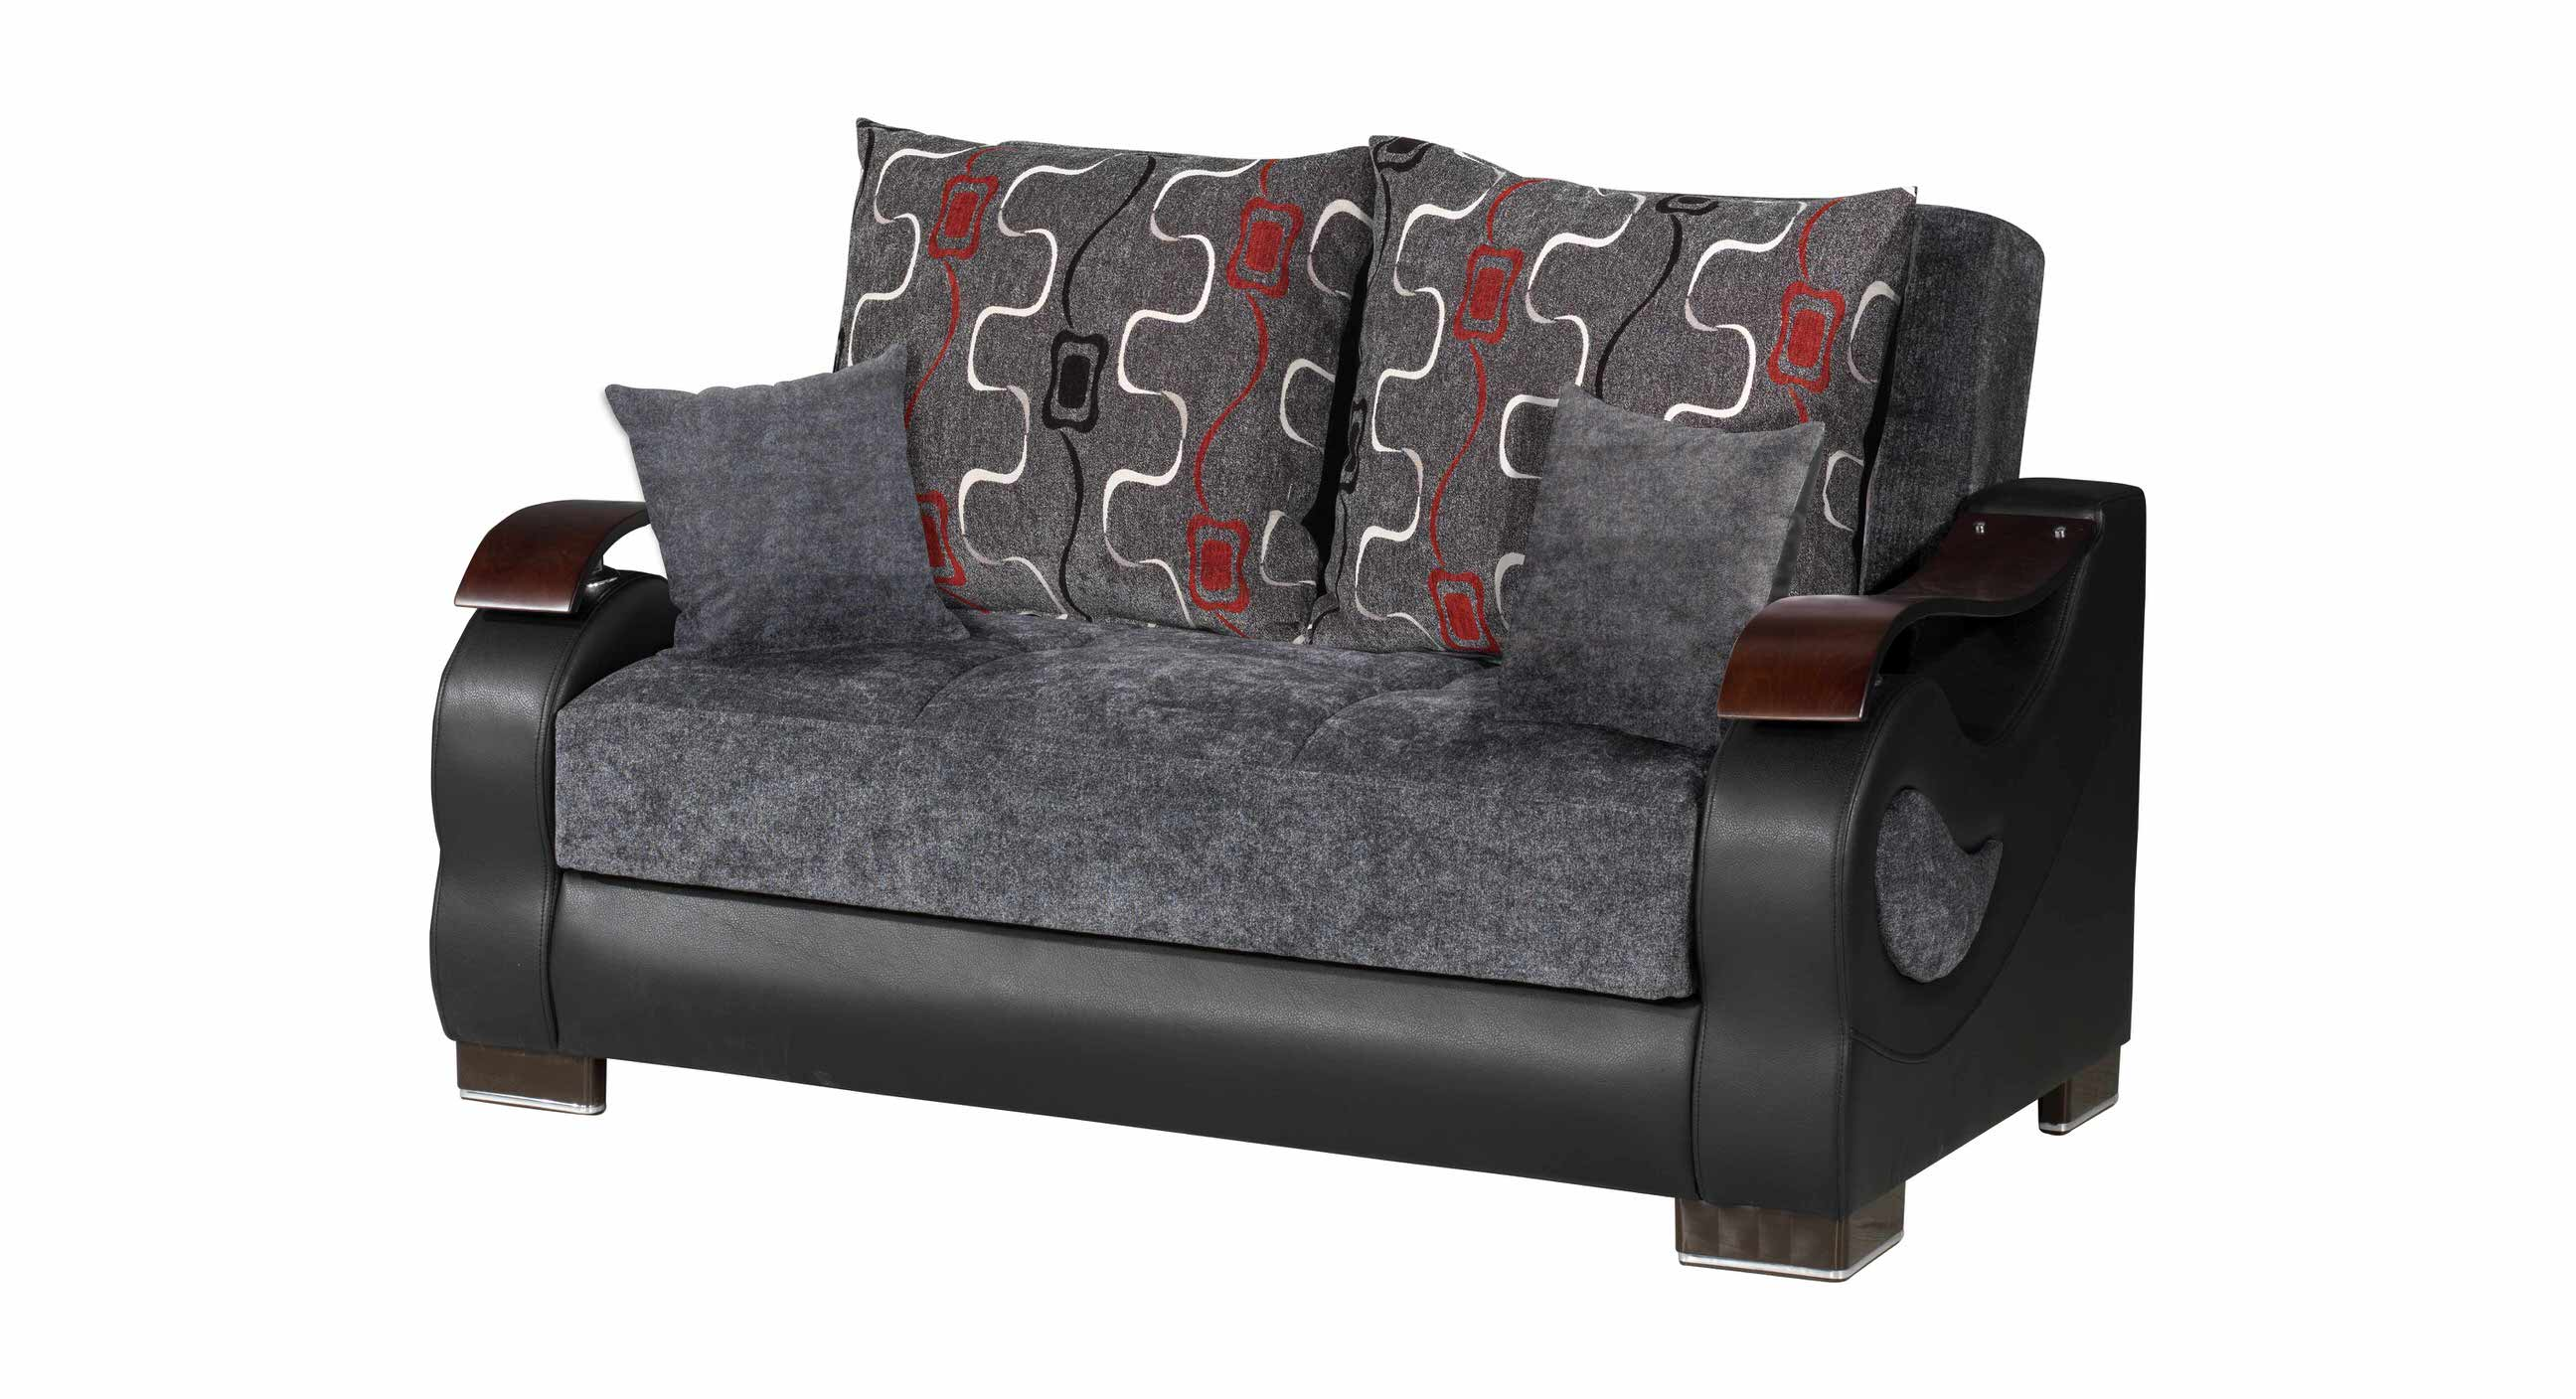 Metroplex Gray Chenille Convertible Loveseat by Casamode